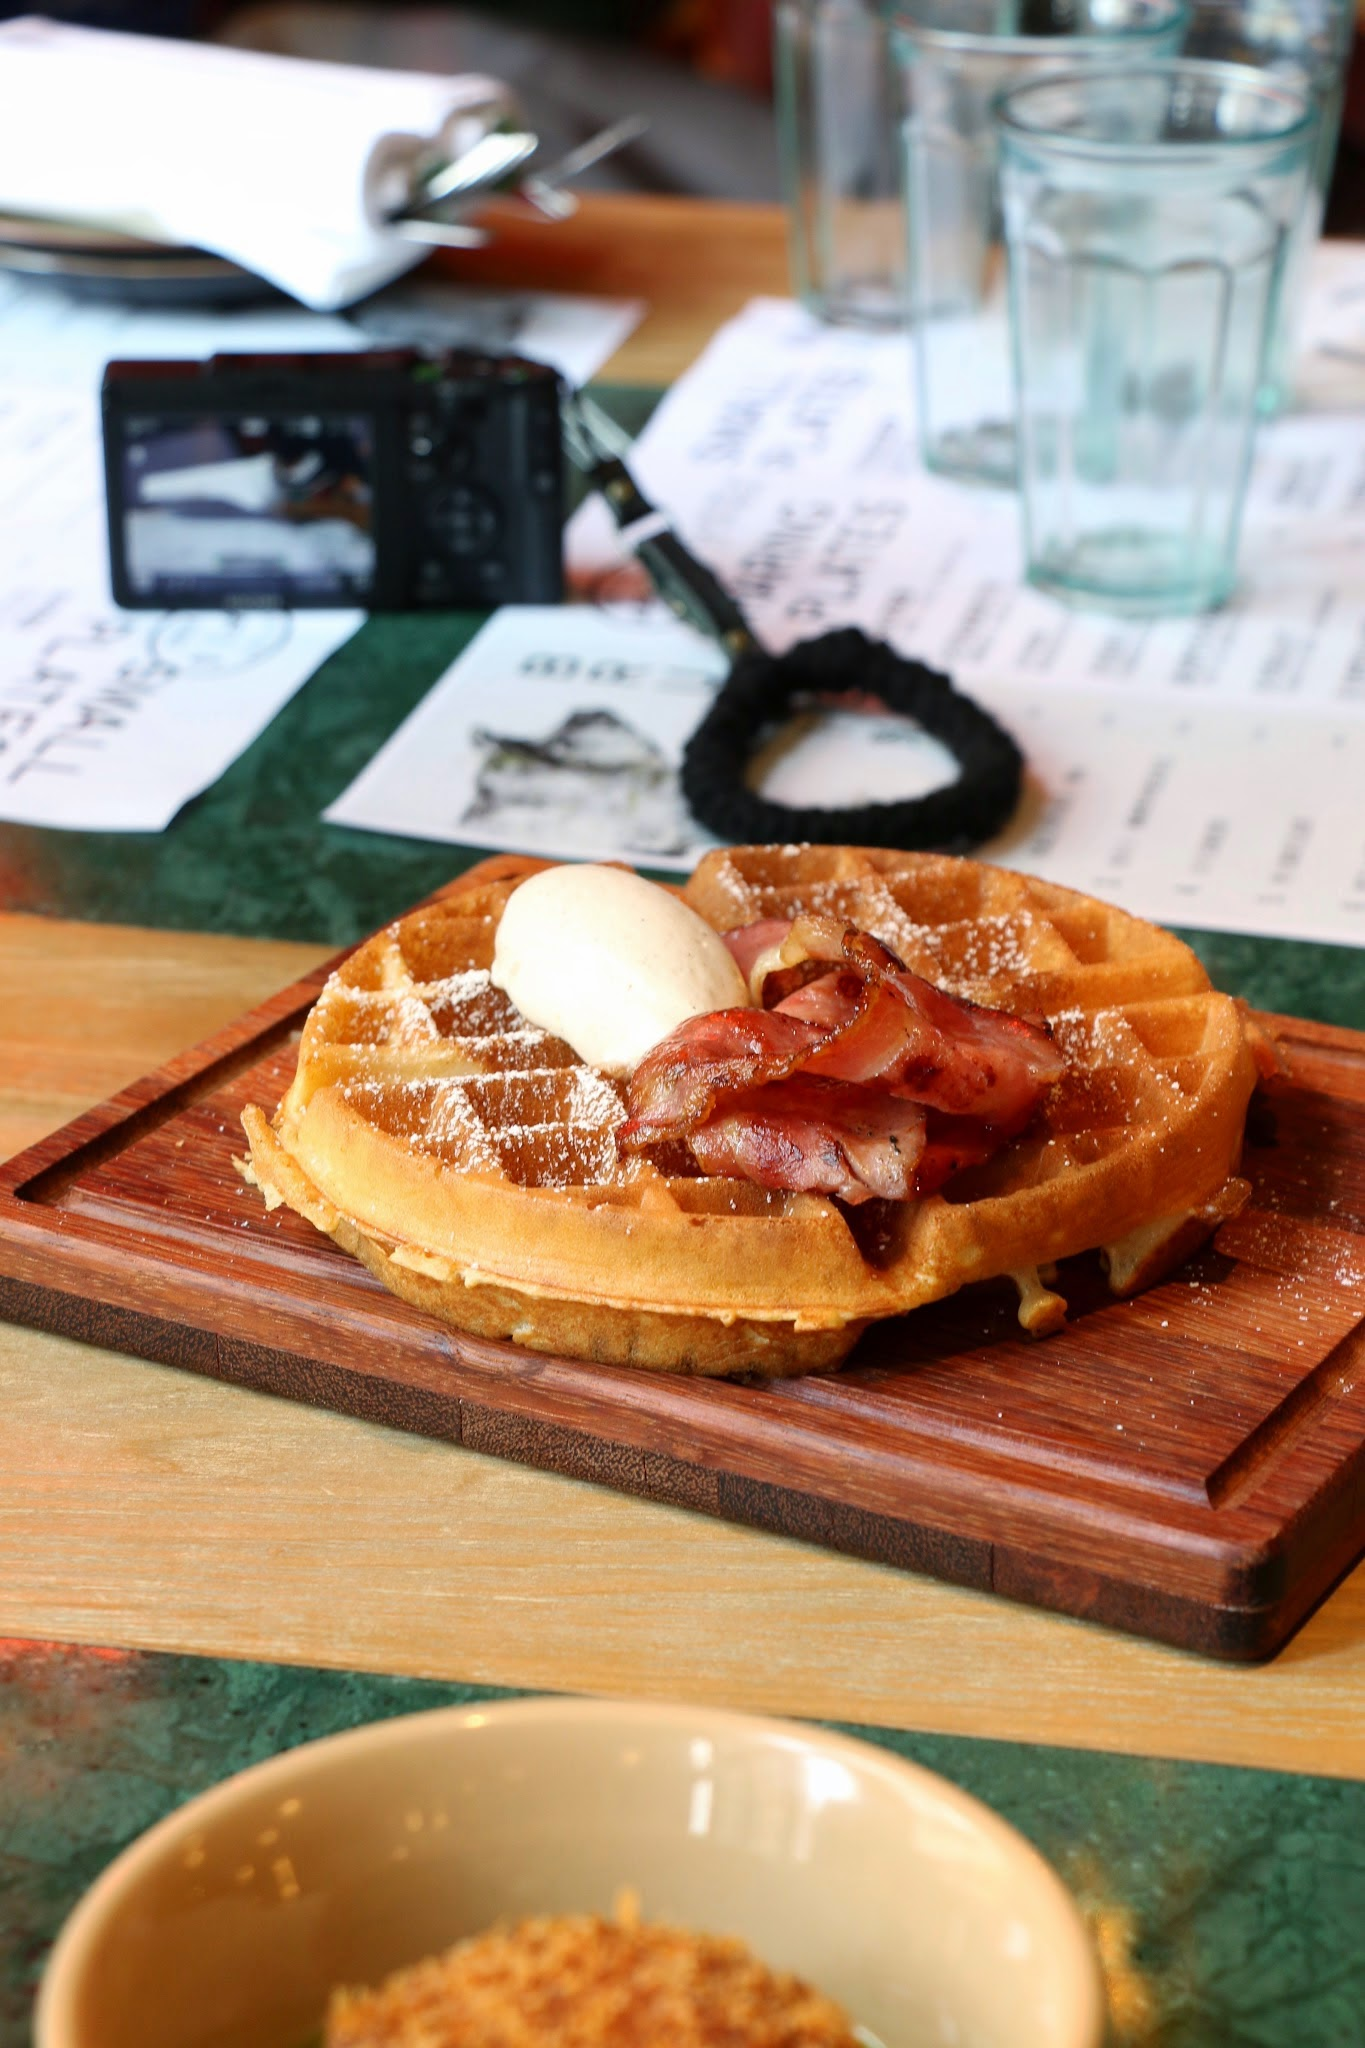 The Fat Pig Bacon Maple waffle